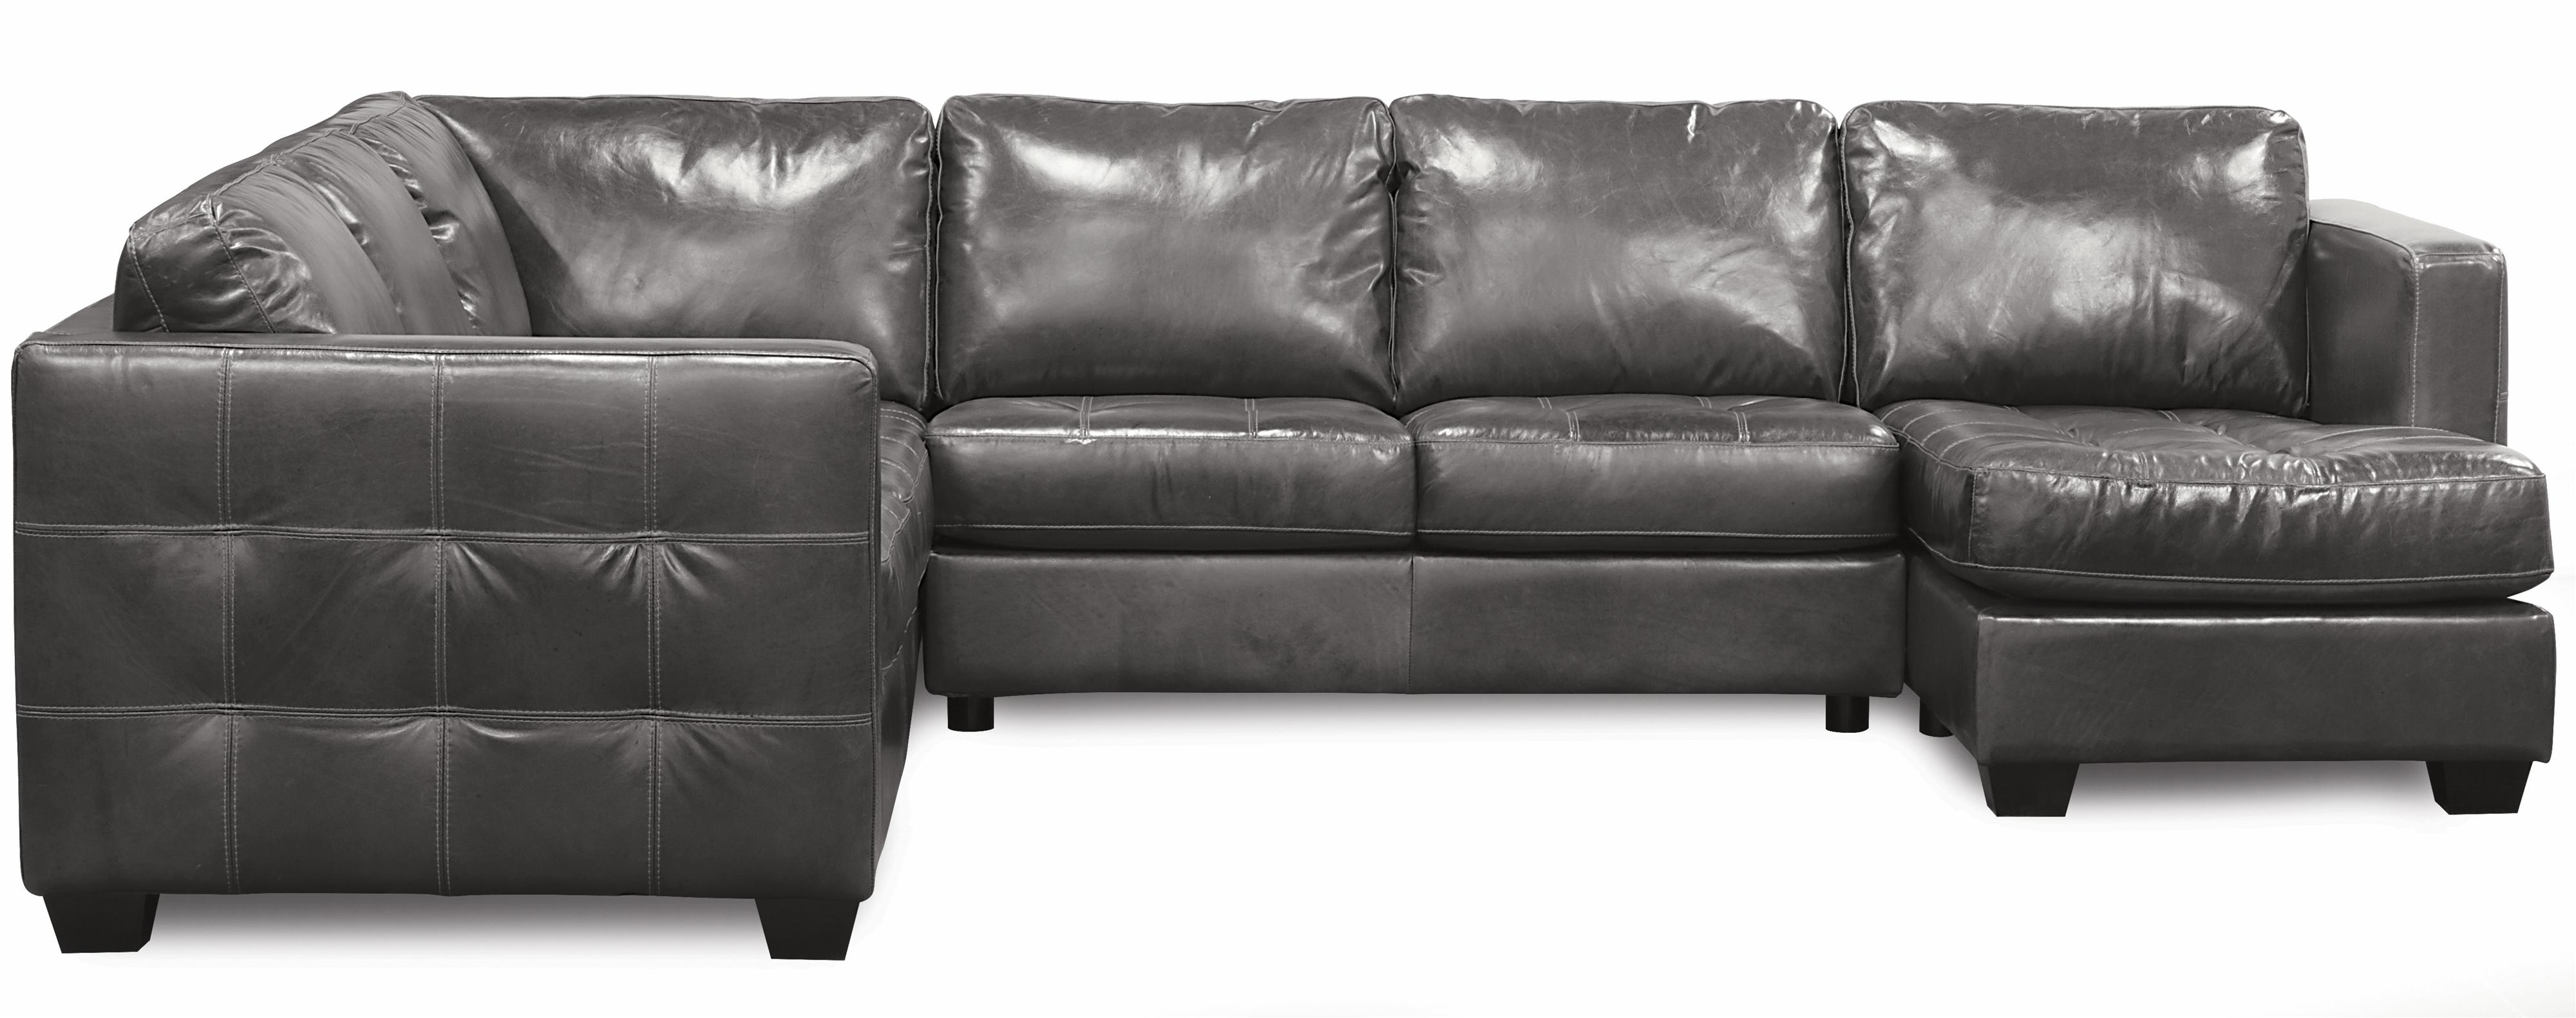 Palliser Barrett Sofa Sectional With Decorative Track Arm Item Number 77558 39